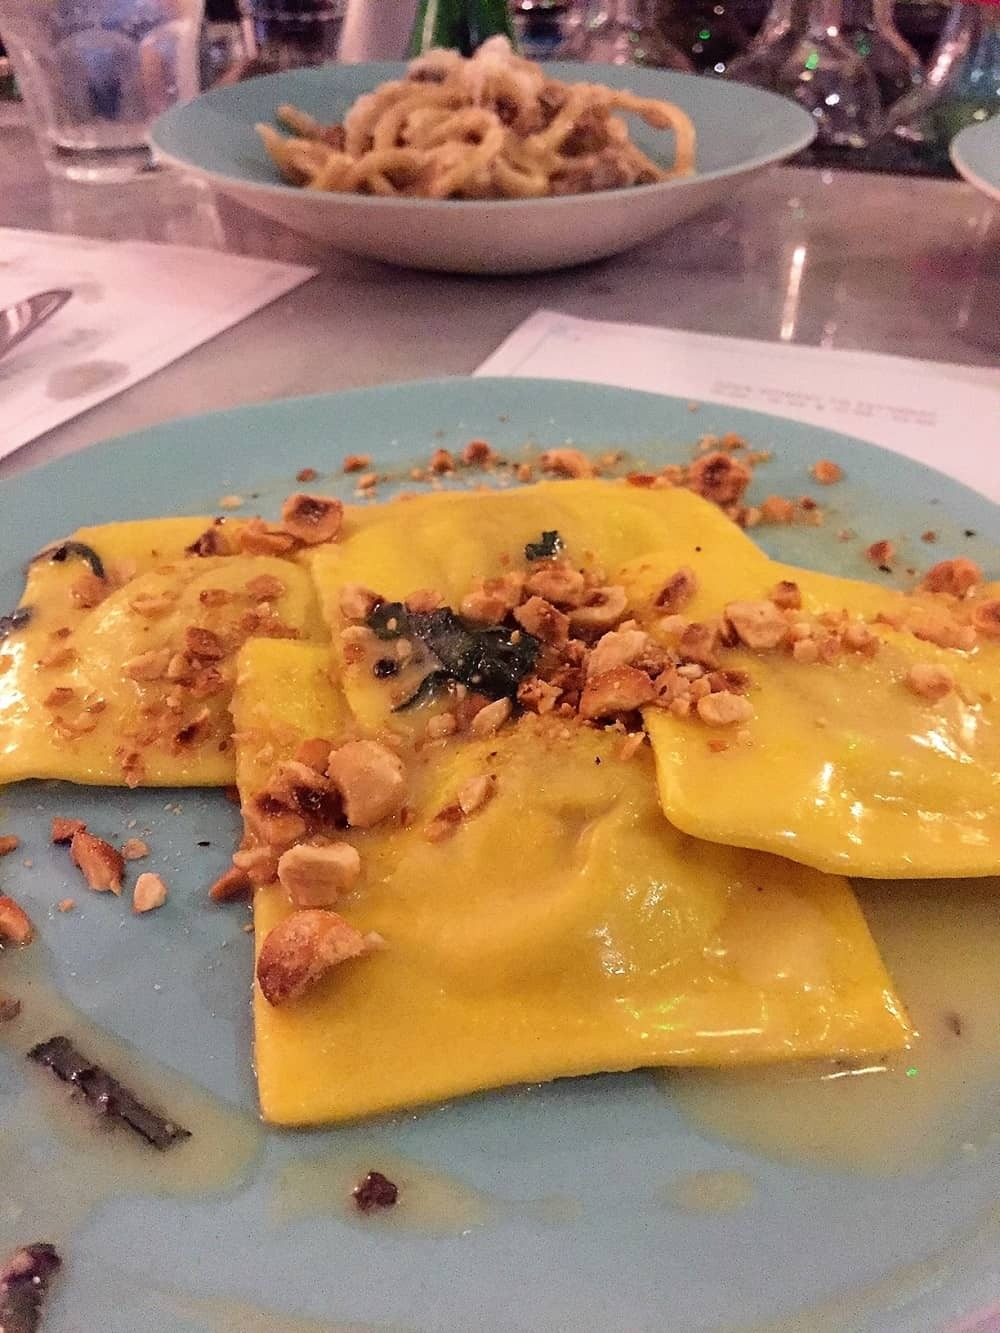 Butternut ravioli from Lina Stores